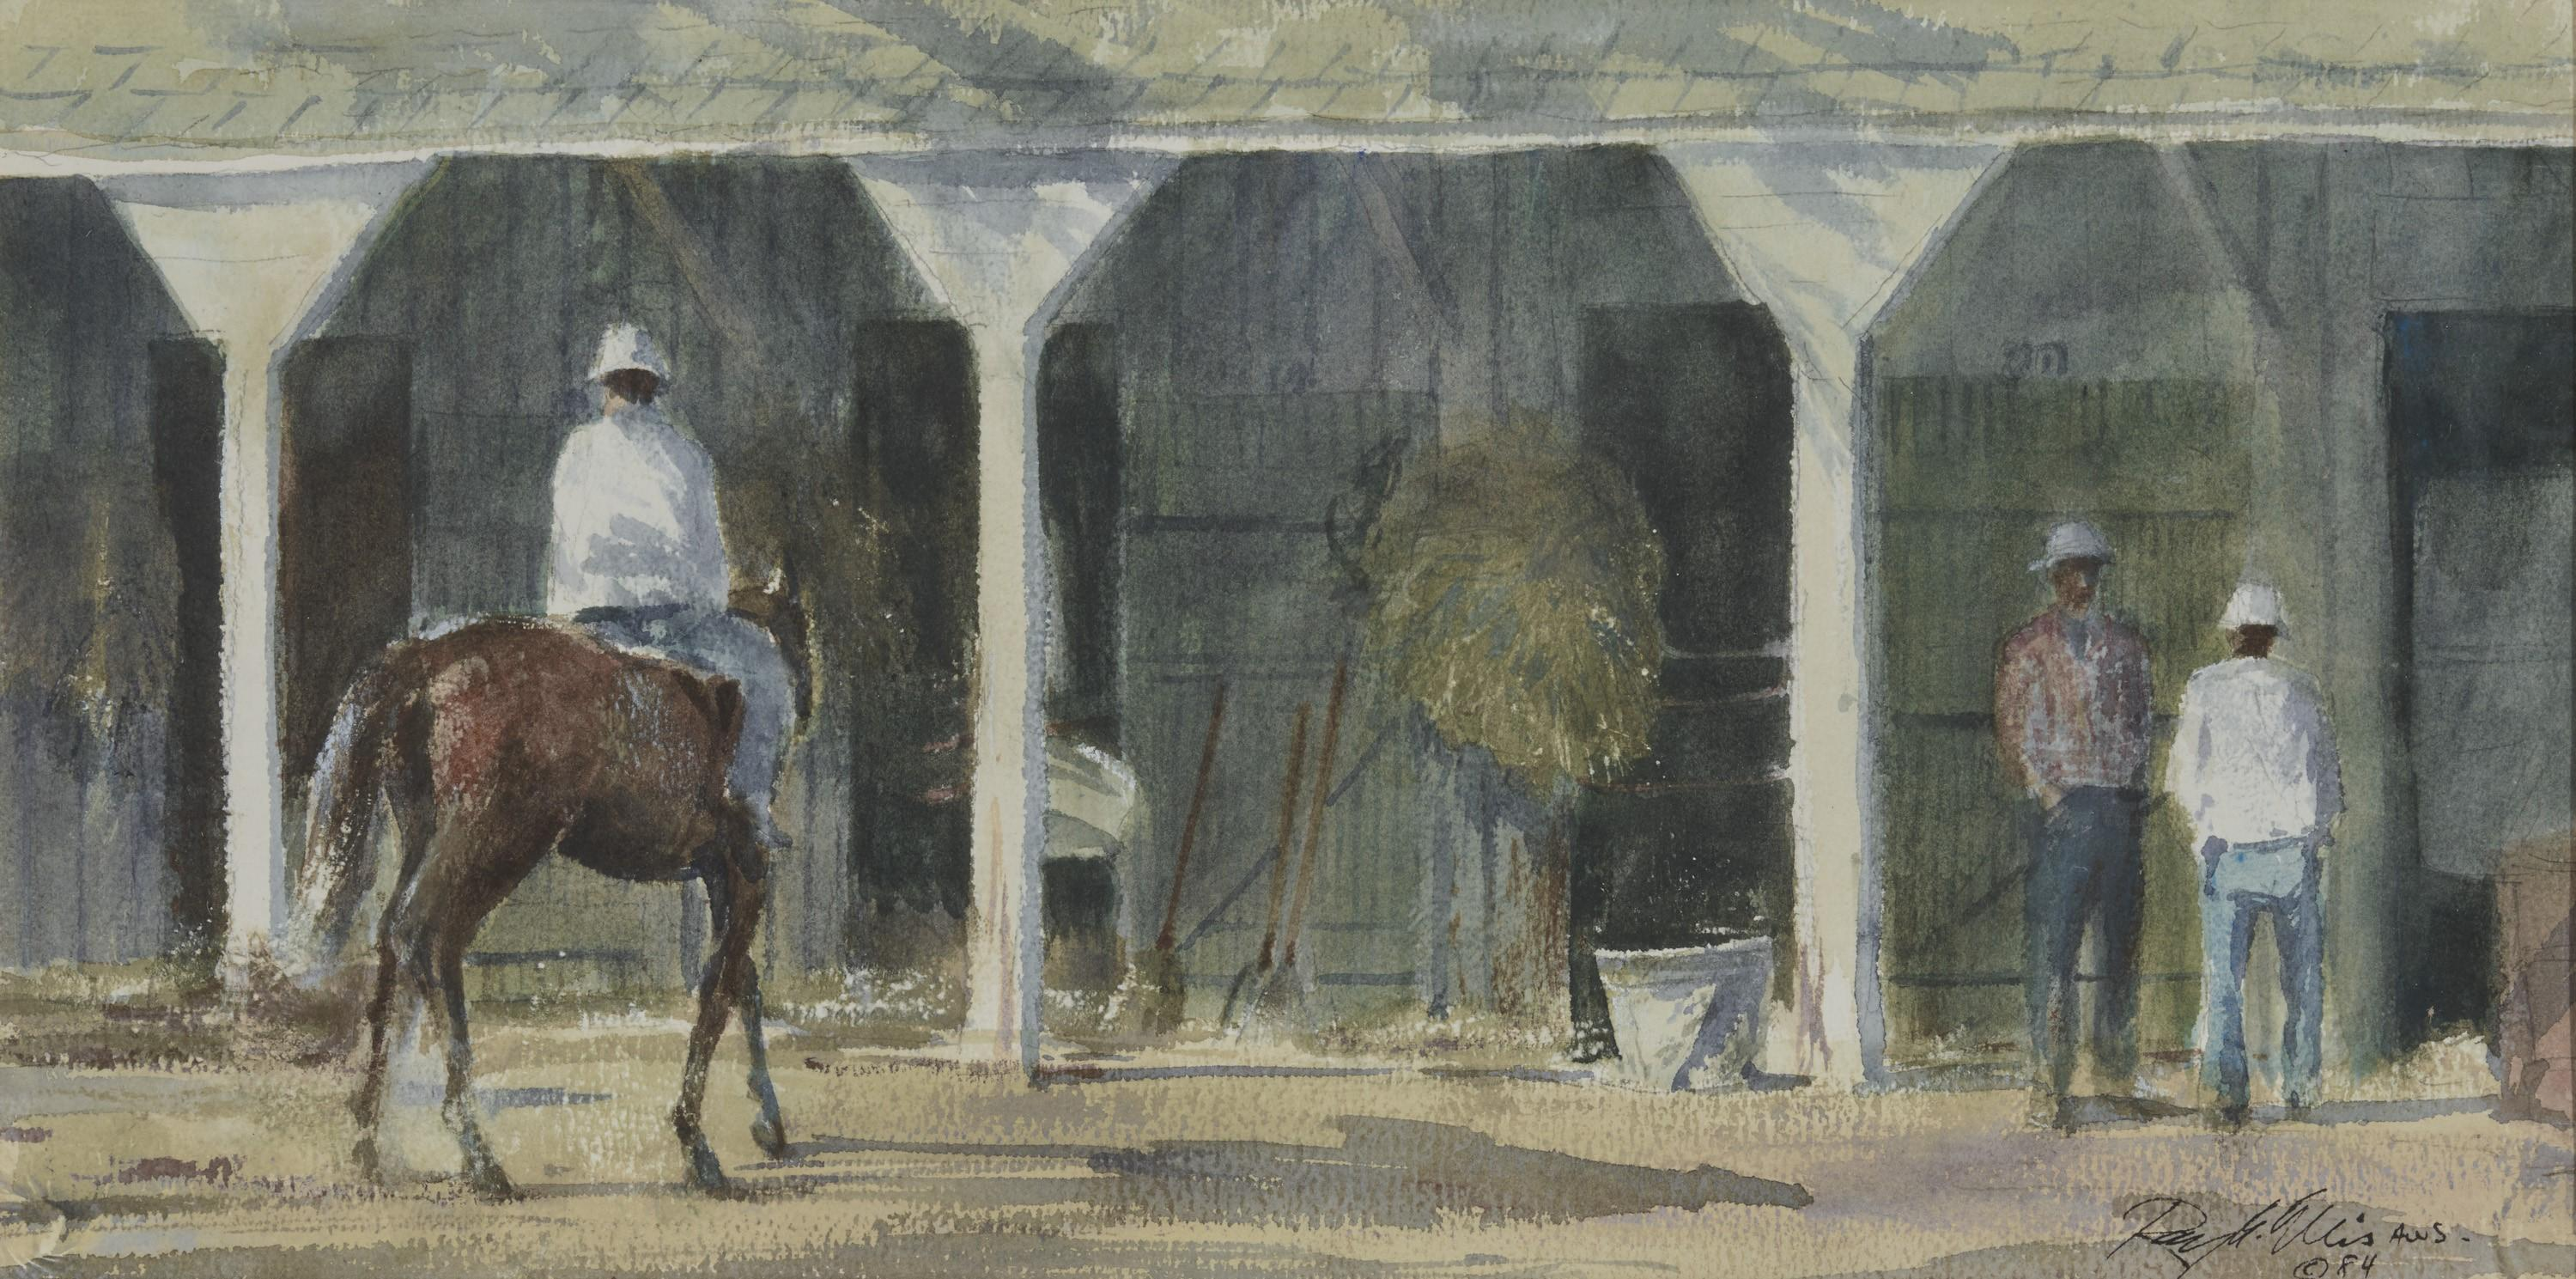 RAY GEORGE ELLIS, (American, 1921-2013), Saratoga Stables, 1984, watercolor, sight: 11 x 22 in., frame: 23 x 34 in.